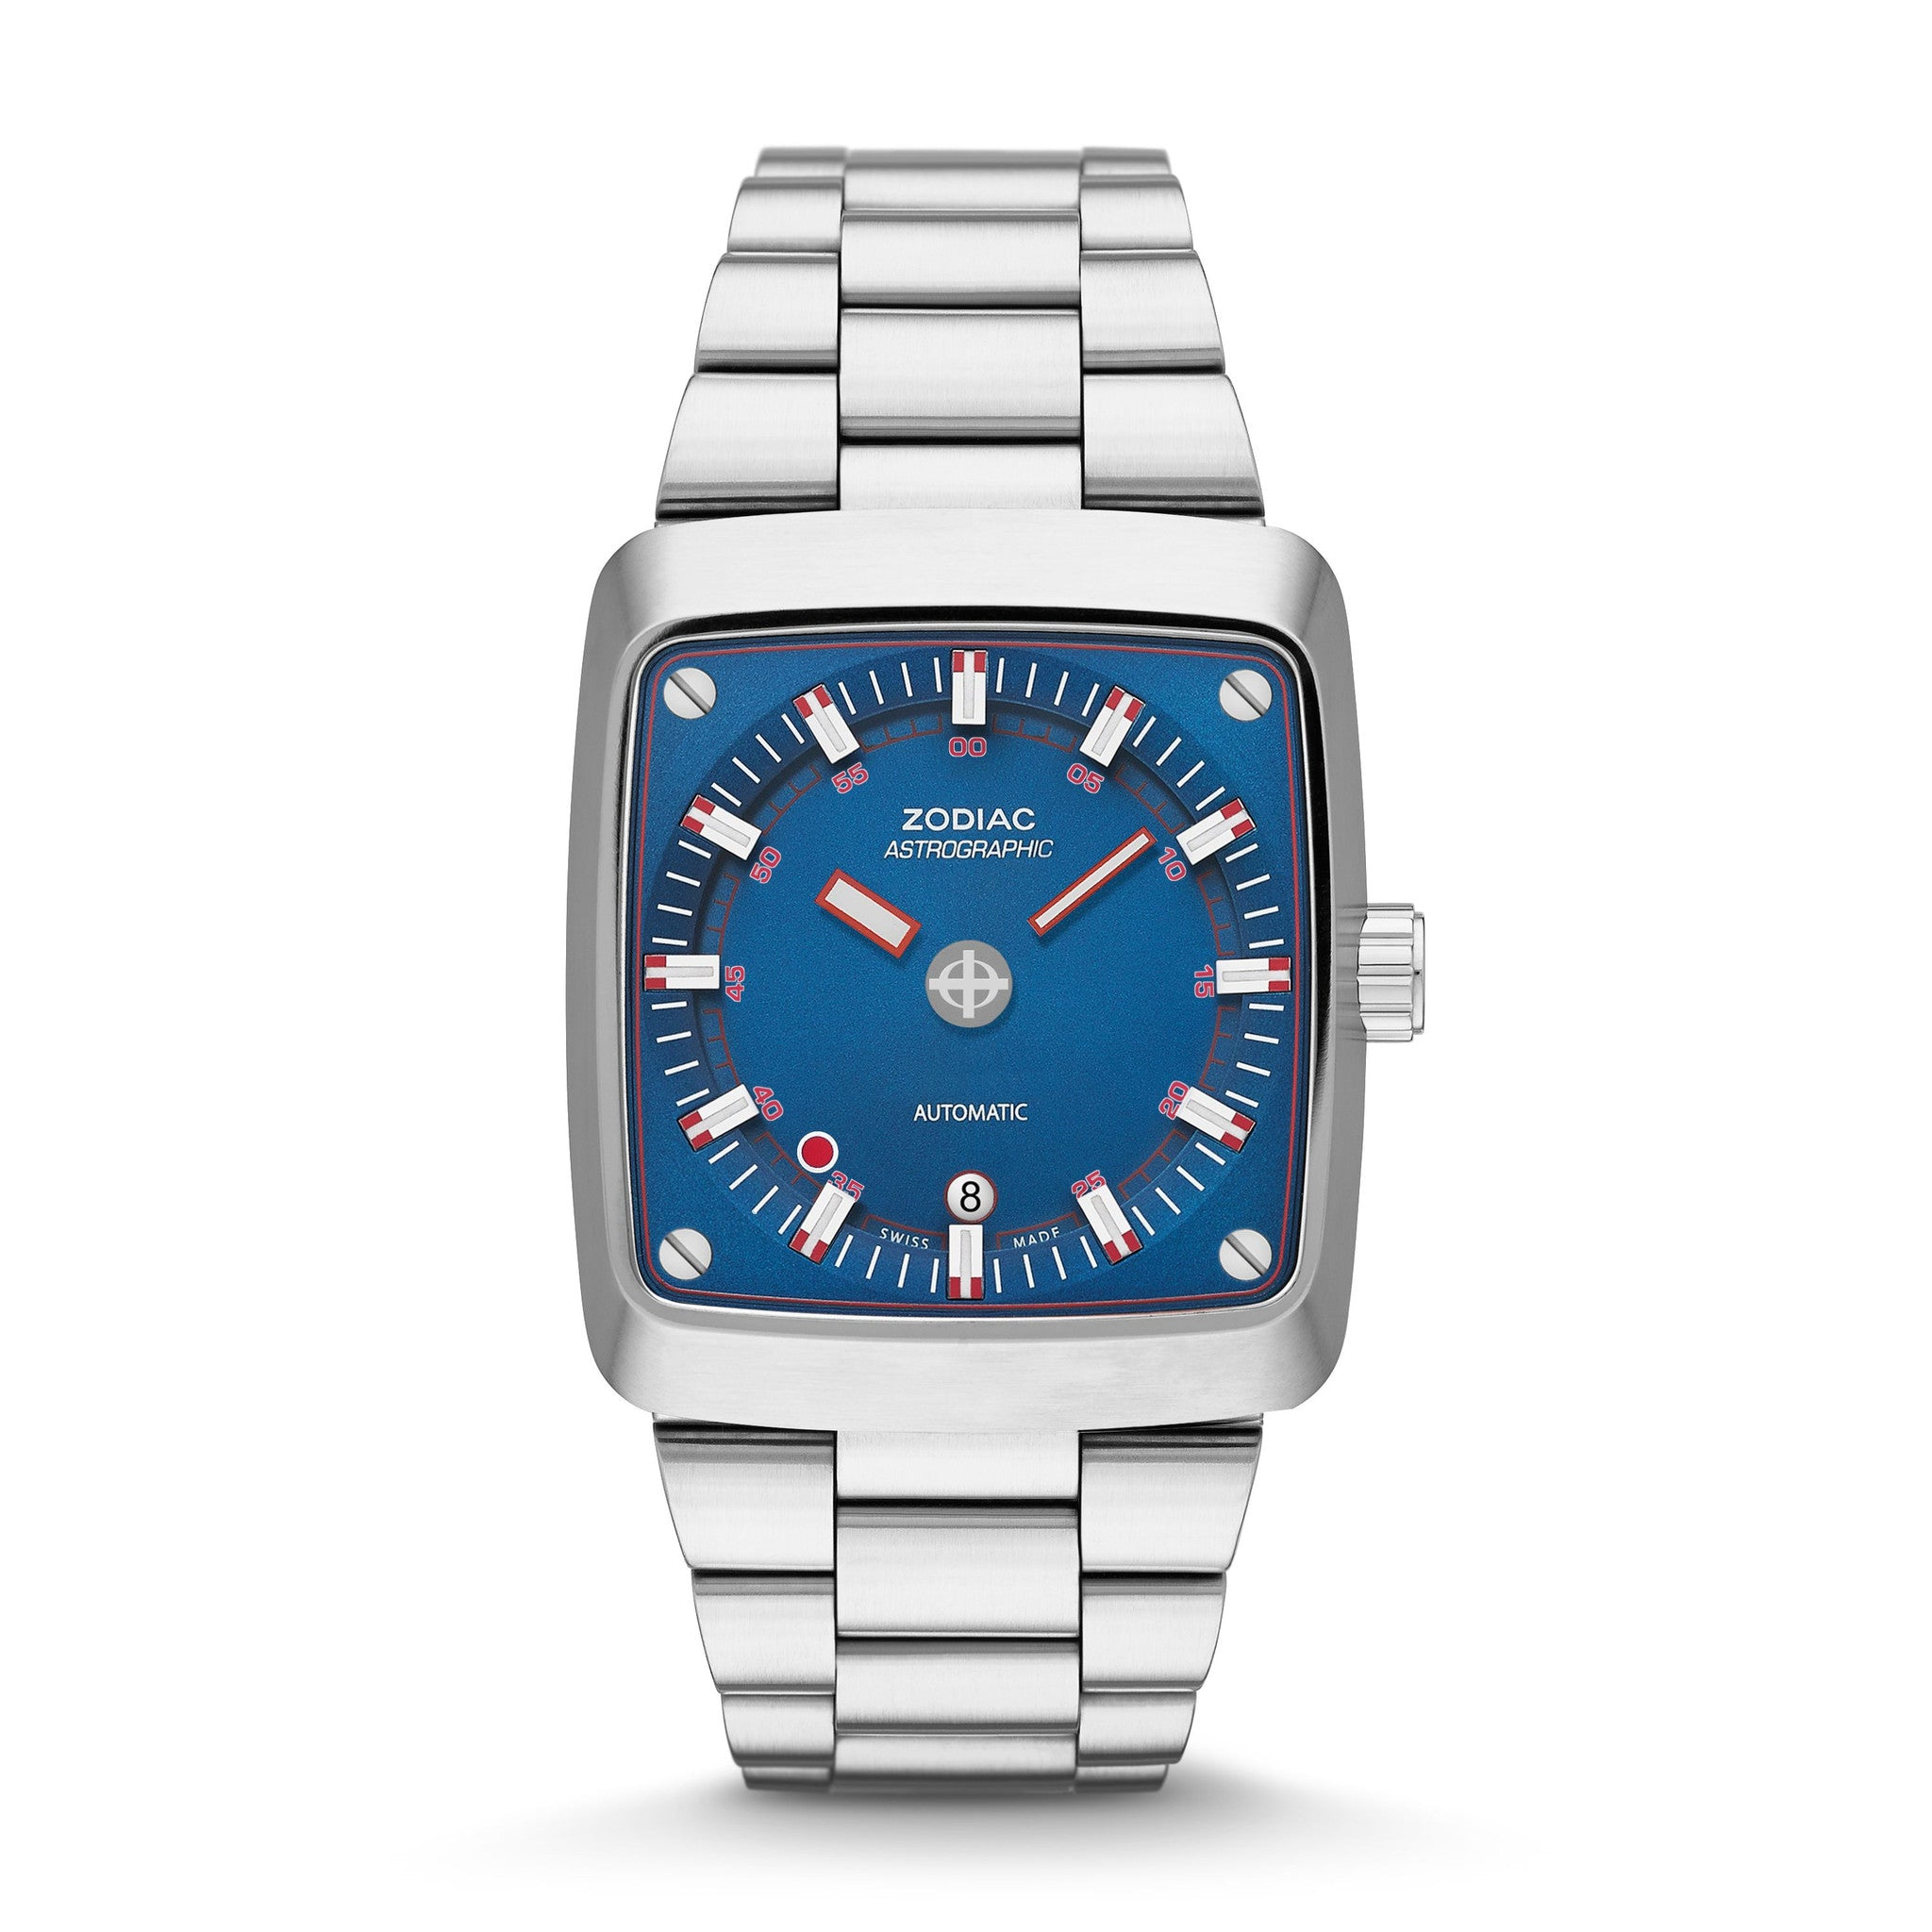 Zodiac Astrographic Watch, High Quality, Automatic Watch, Blue Face